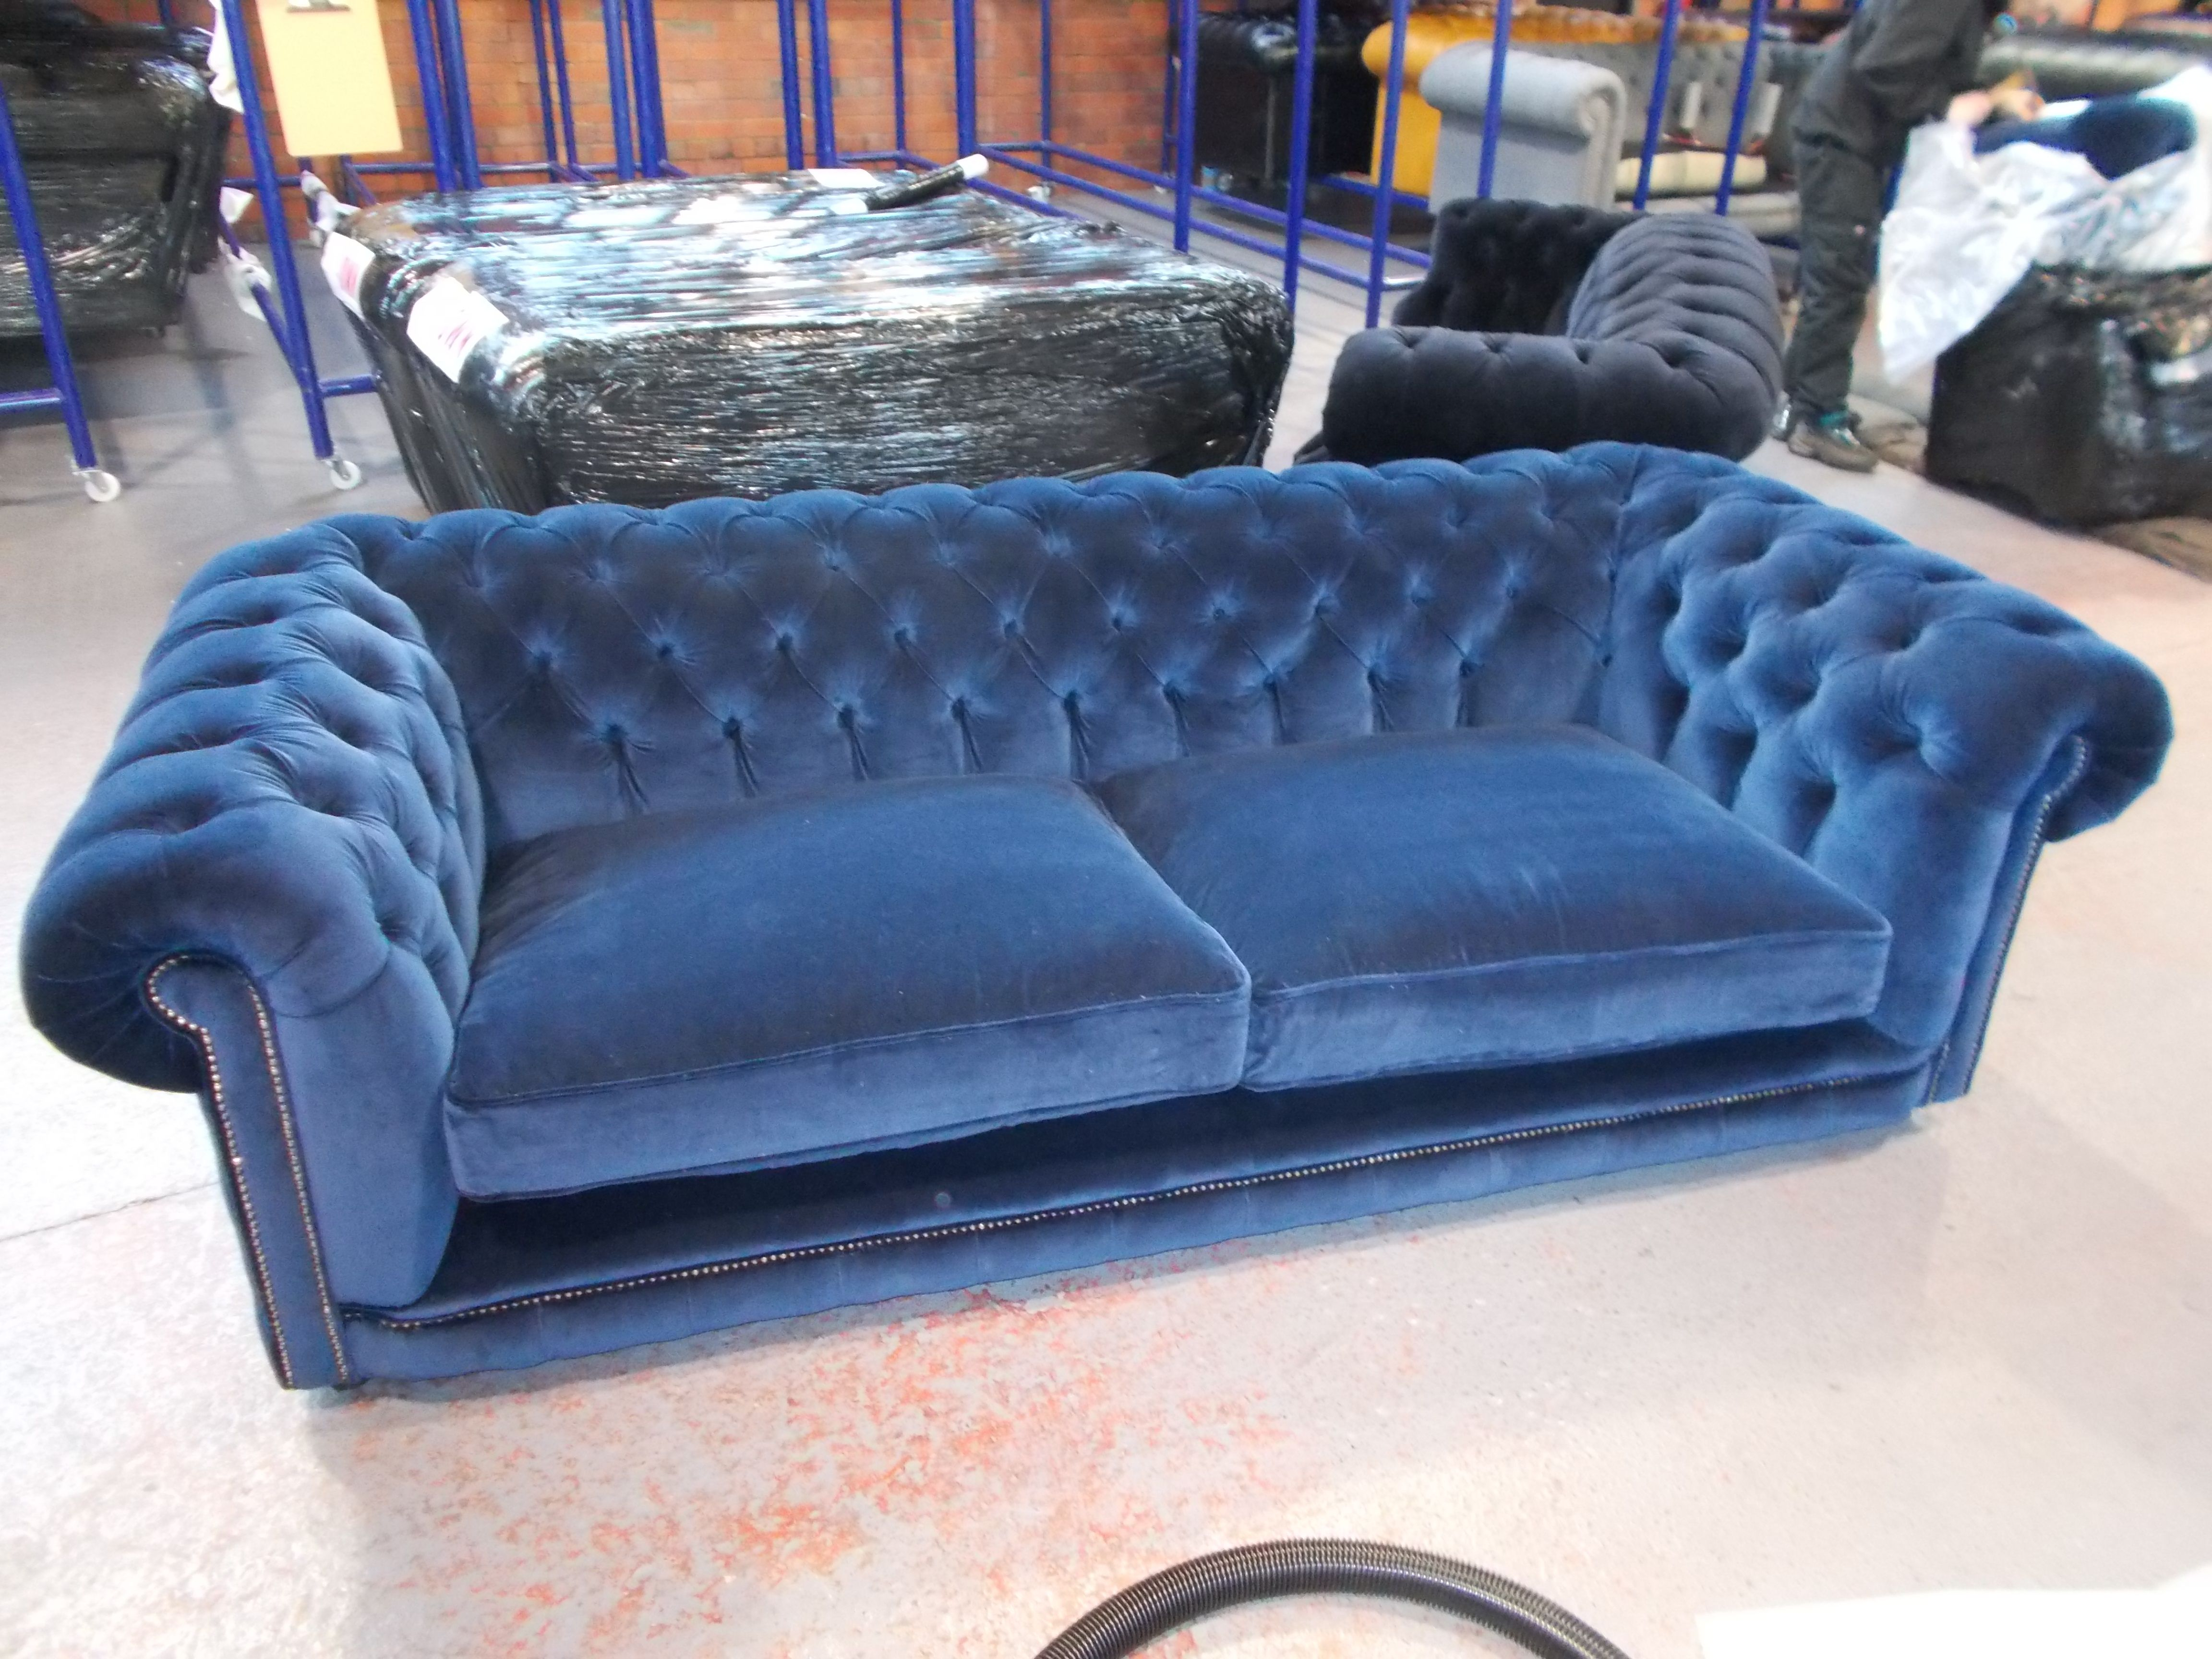 Hampton 3 Seater Chesterfield Sofa In Blue Velvet With 2 Large